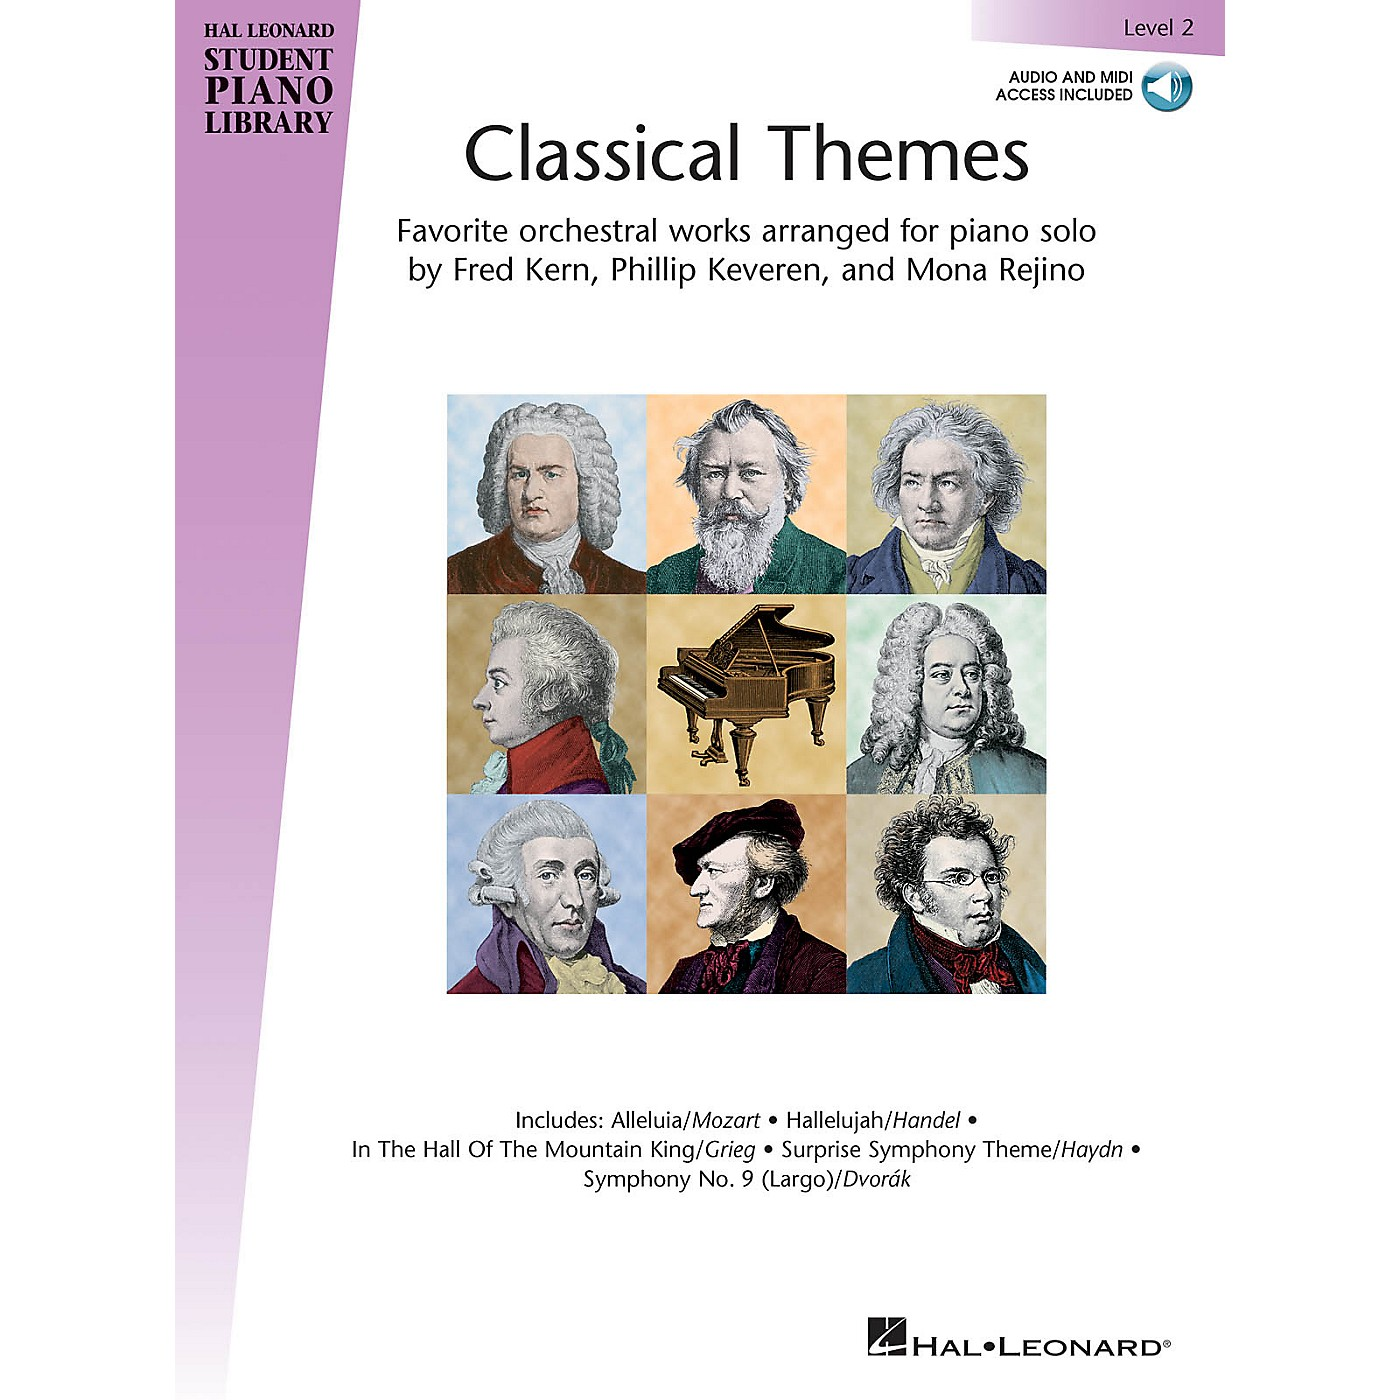 Hal Leonard Classical Themes - Level 2 Piano Library Series Book Audio Online thumbnail